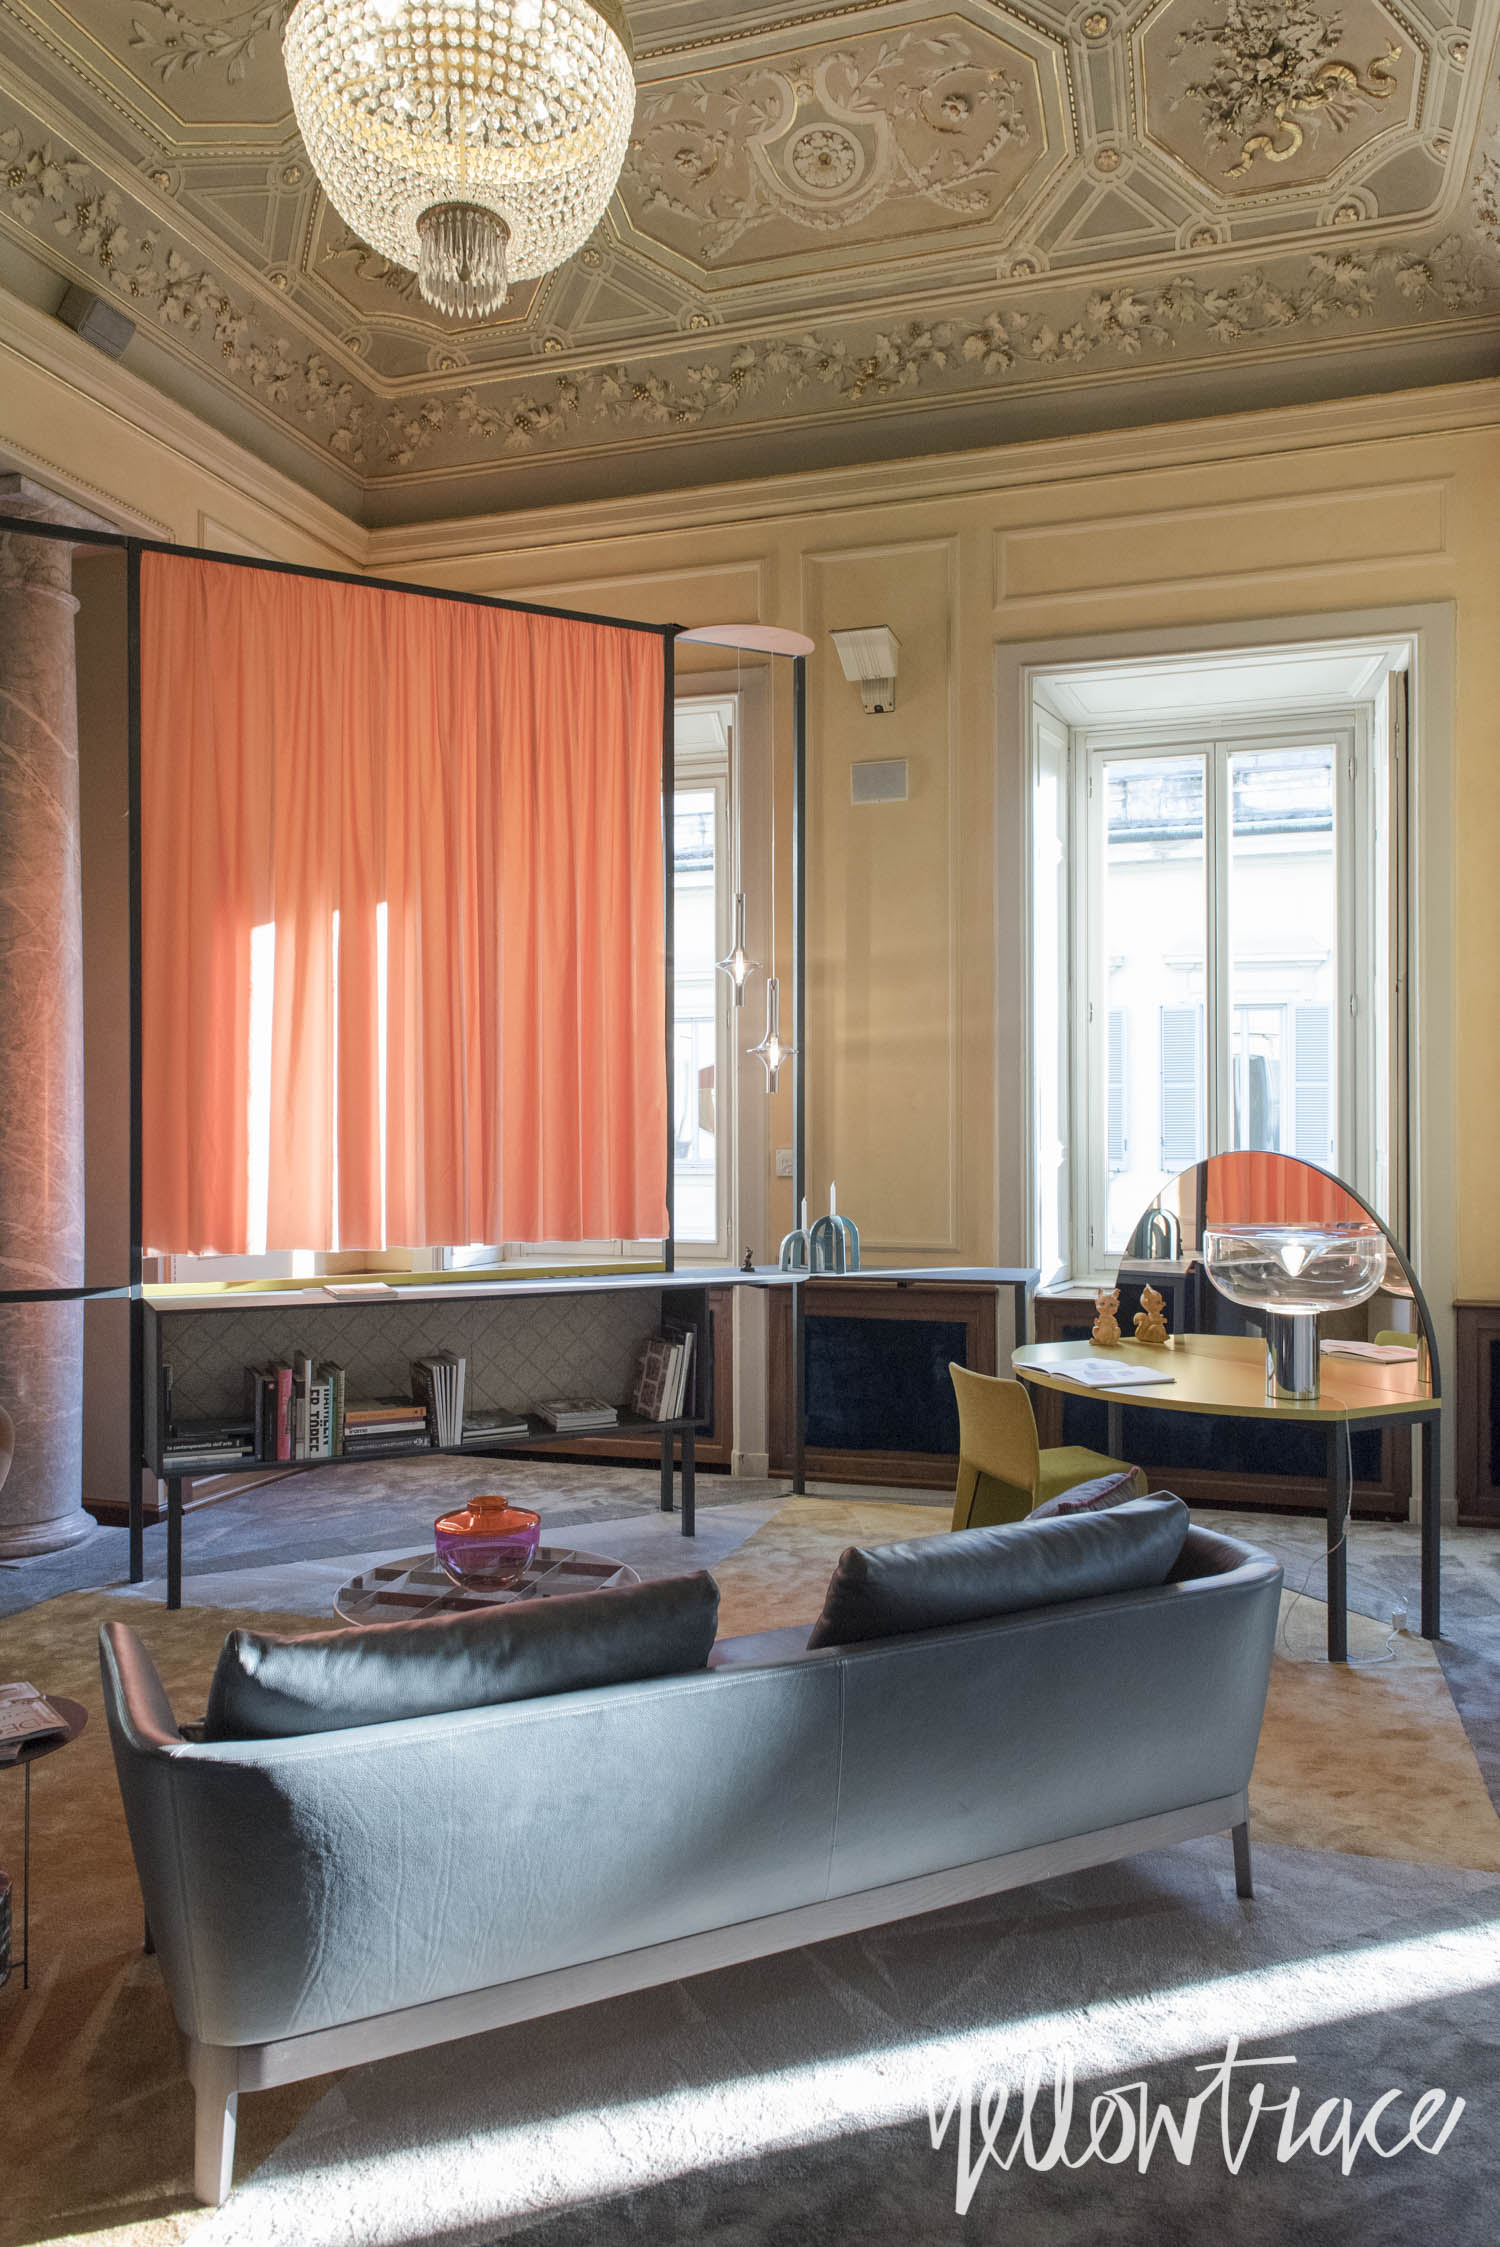 how to make er diagram amazing s musician record online home decorating services Elle Decor Soft Home by Marcante Testa-UdA Architetti at Palazzo Bovara,  Photo ©